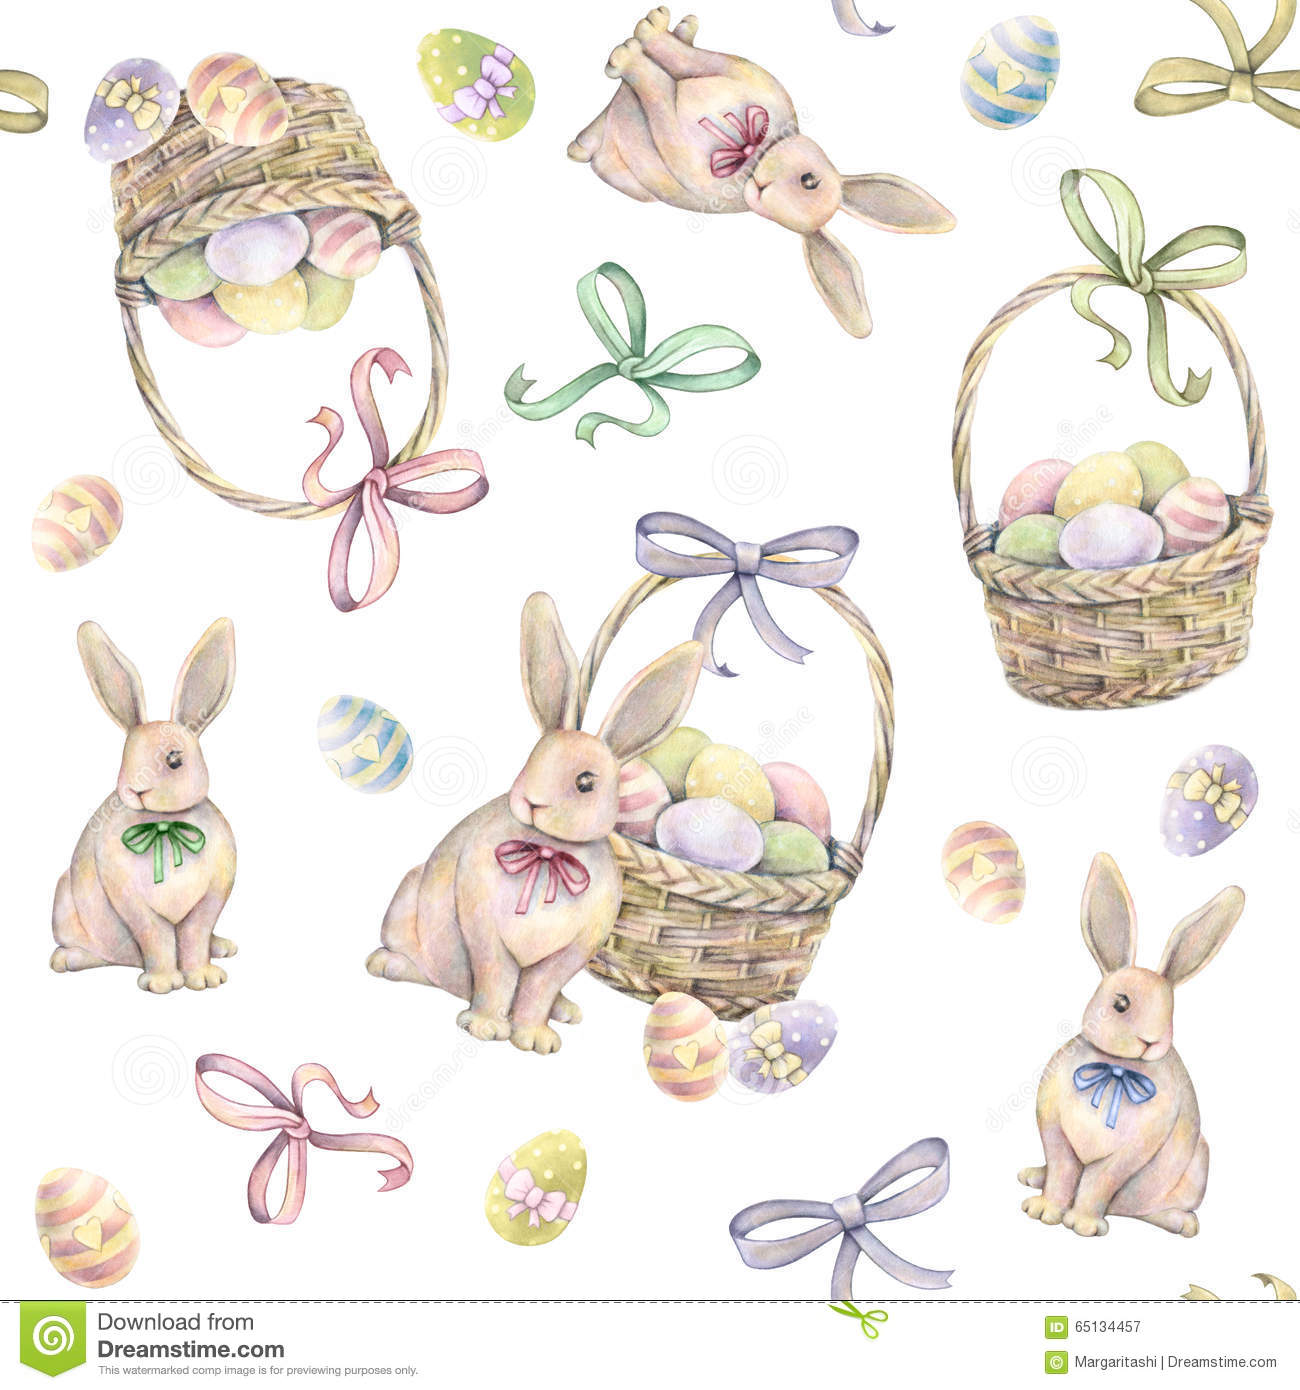 Rabbit with Easter basket on a white background. Color Easter eggs. Watercolor drawing. Handwork. Seamless pattern